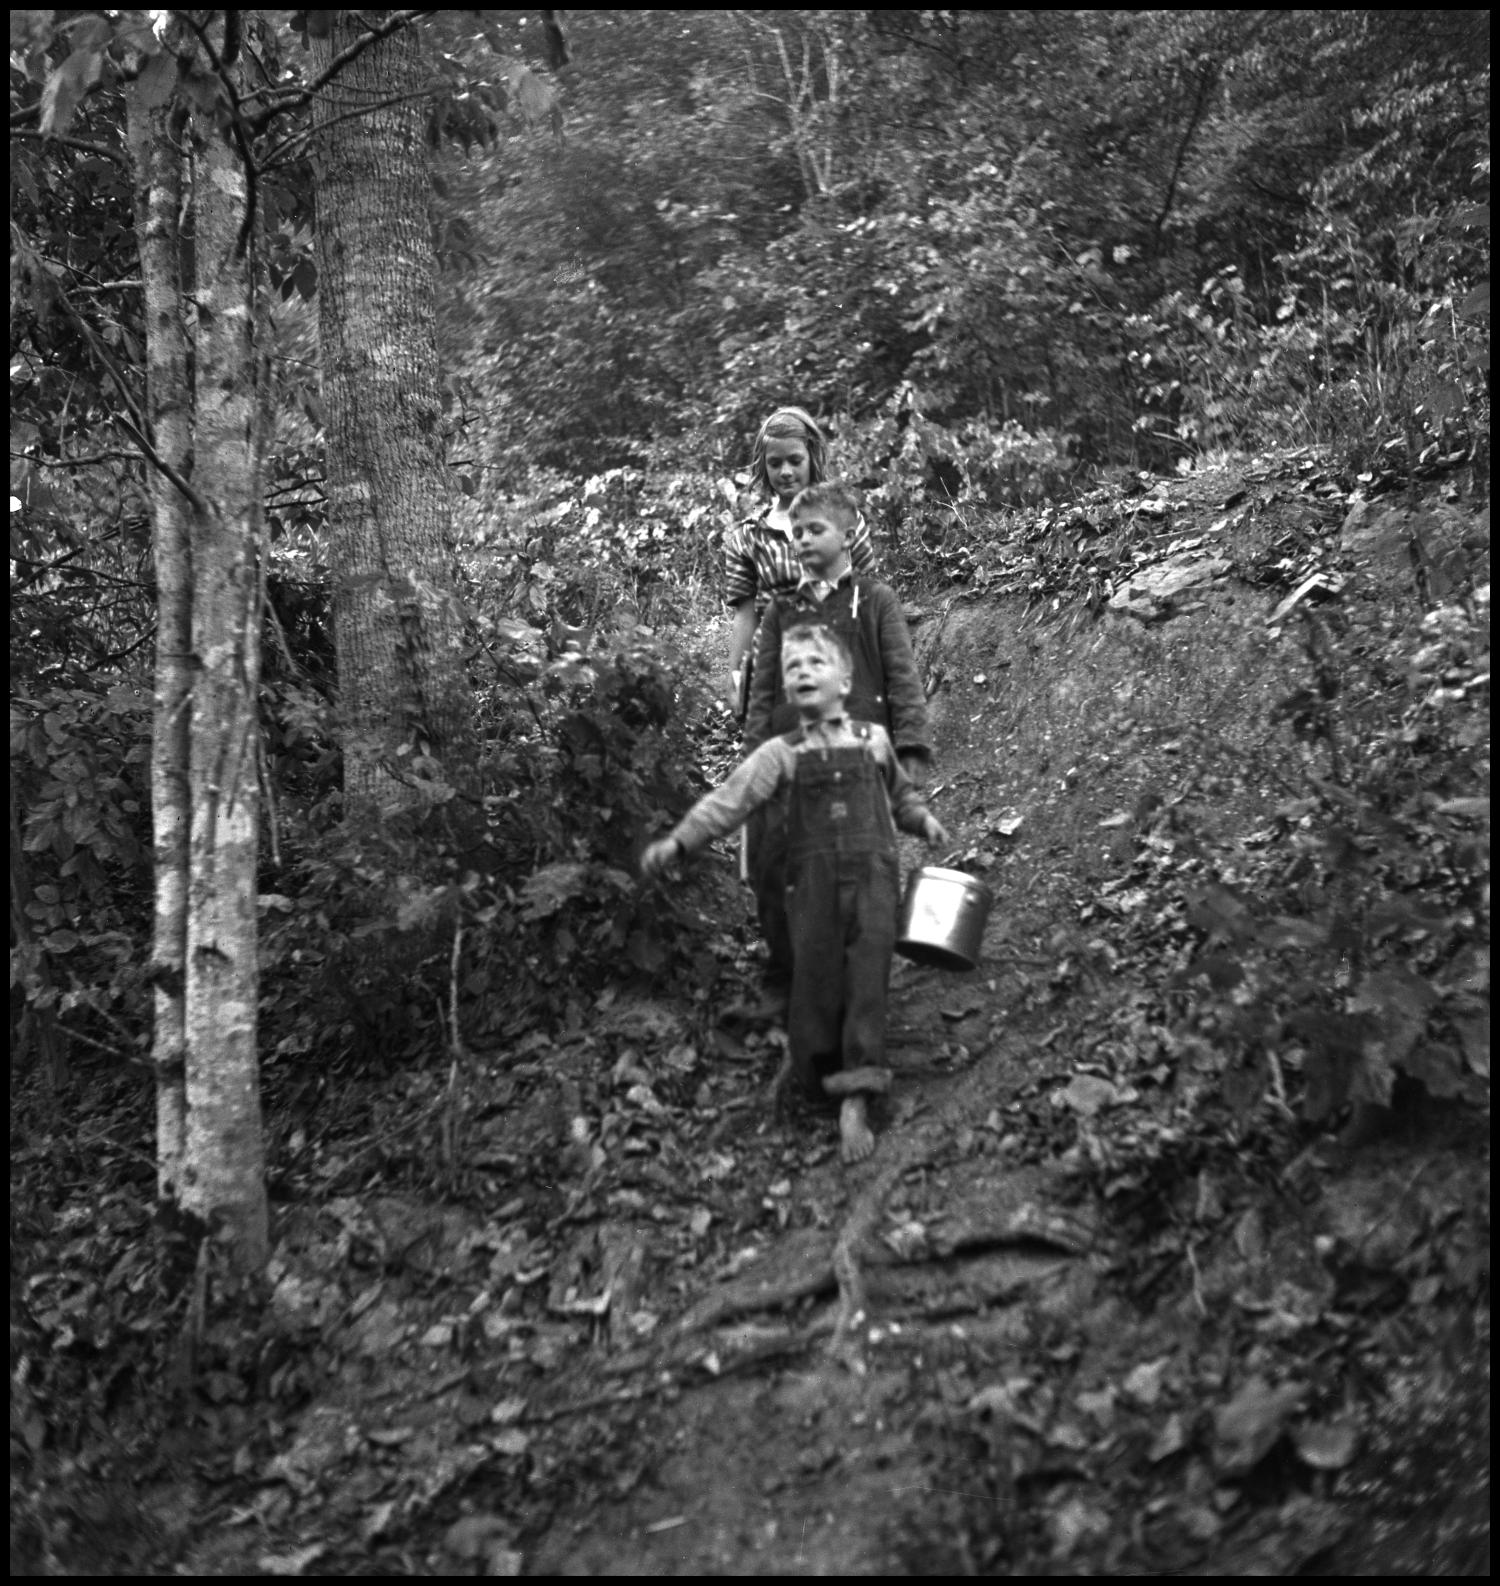 [Children walking along path], Photograph of three children of varying ages walking along a dirt path through a wooded area. The child in the front of the line is barefoot and carrying a lunch pail.,